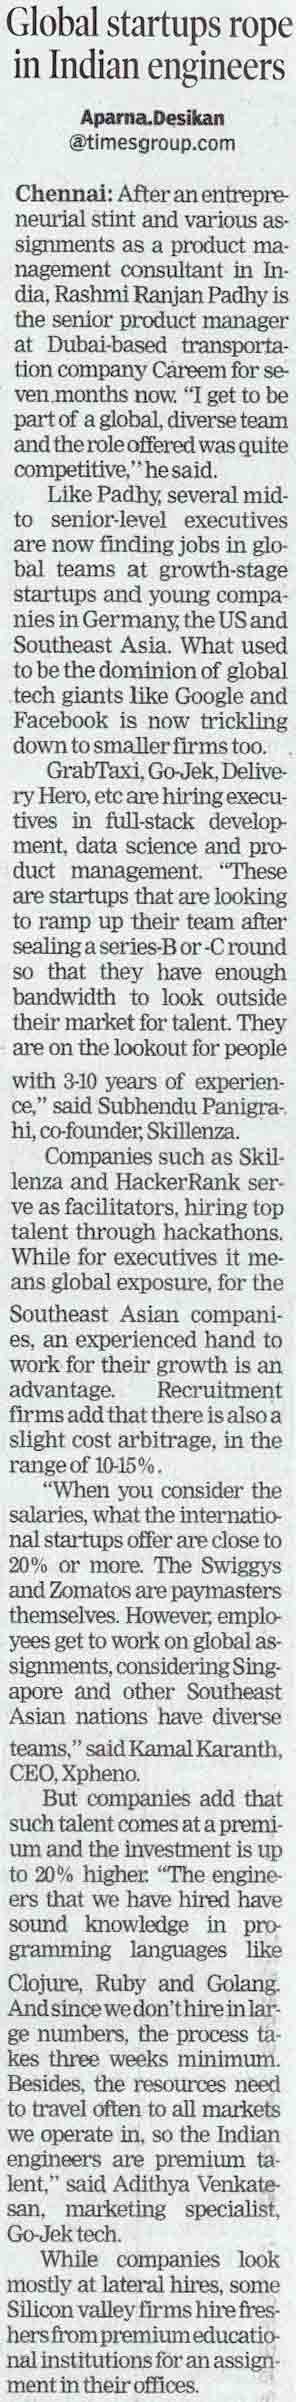 Global startups rope in Indian engineers